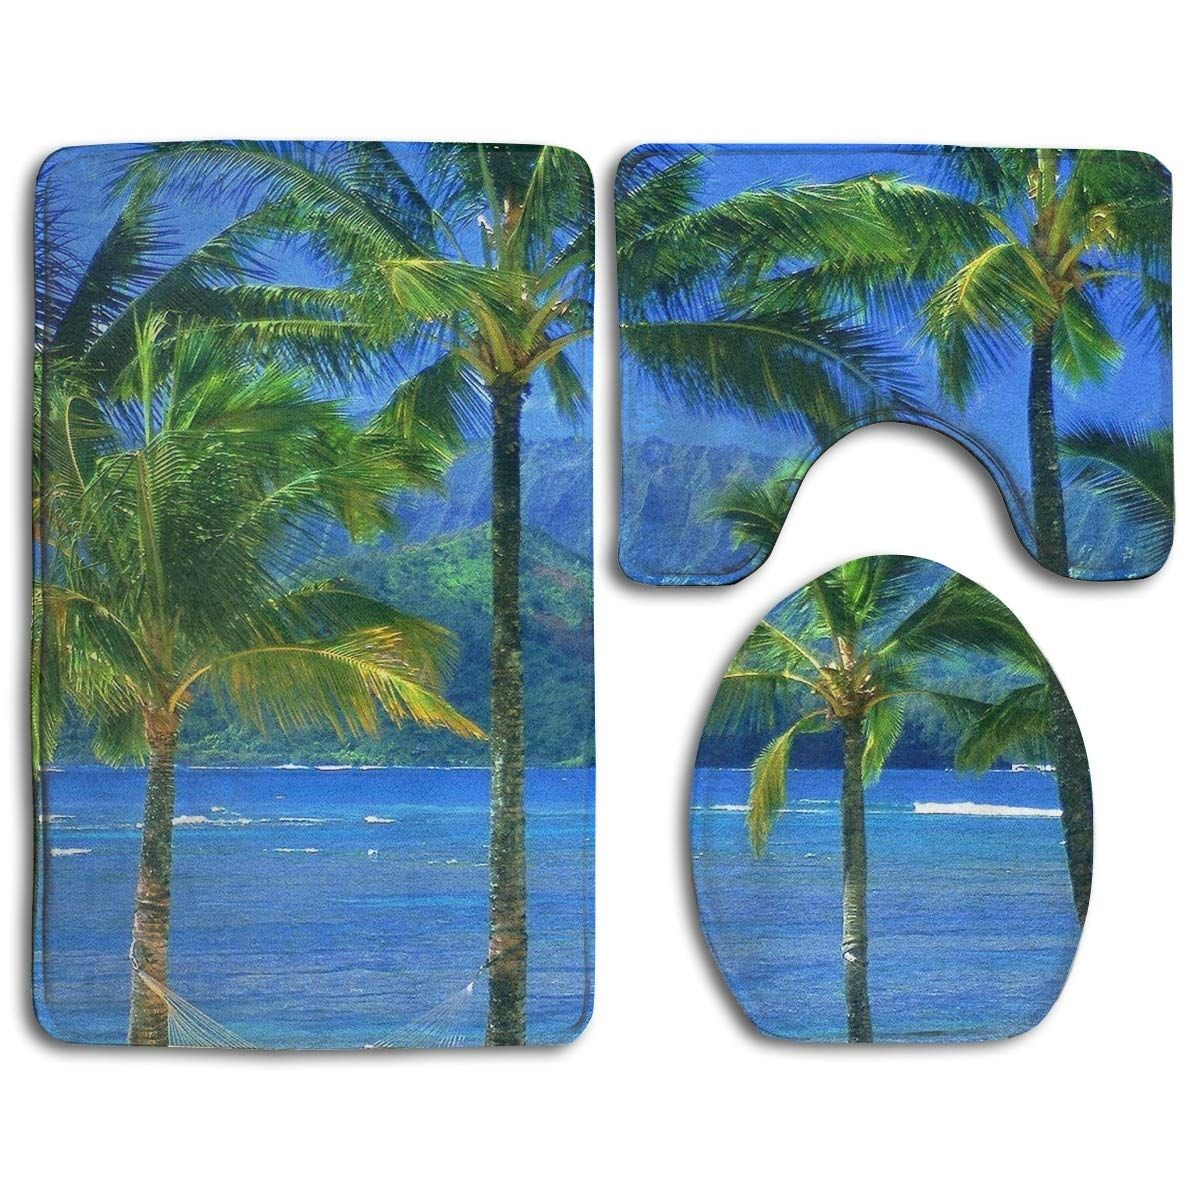 coconut palm tree 3 piece bathroom rugs set bath rug contour